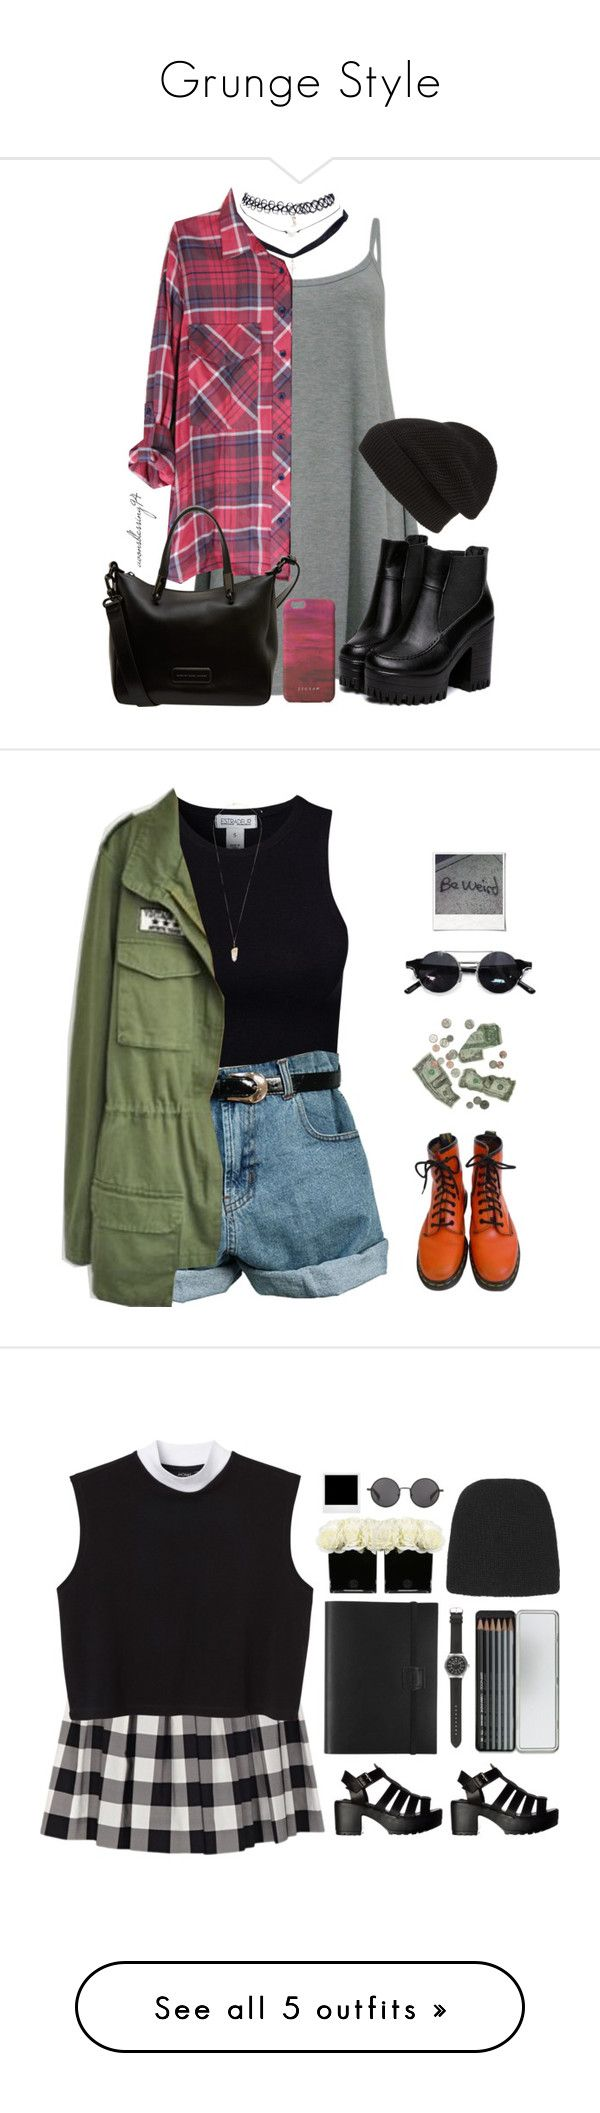 """Grunge Style"" by pixie-inspired ❤ liked on Polyvore featuring Wet Seal, Phase 3, Marc by Marc Jacobs, Jigsaw, Estradeur, House of Holland, Retrò, Dr. Martens, Eloquii and xO Design"